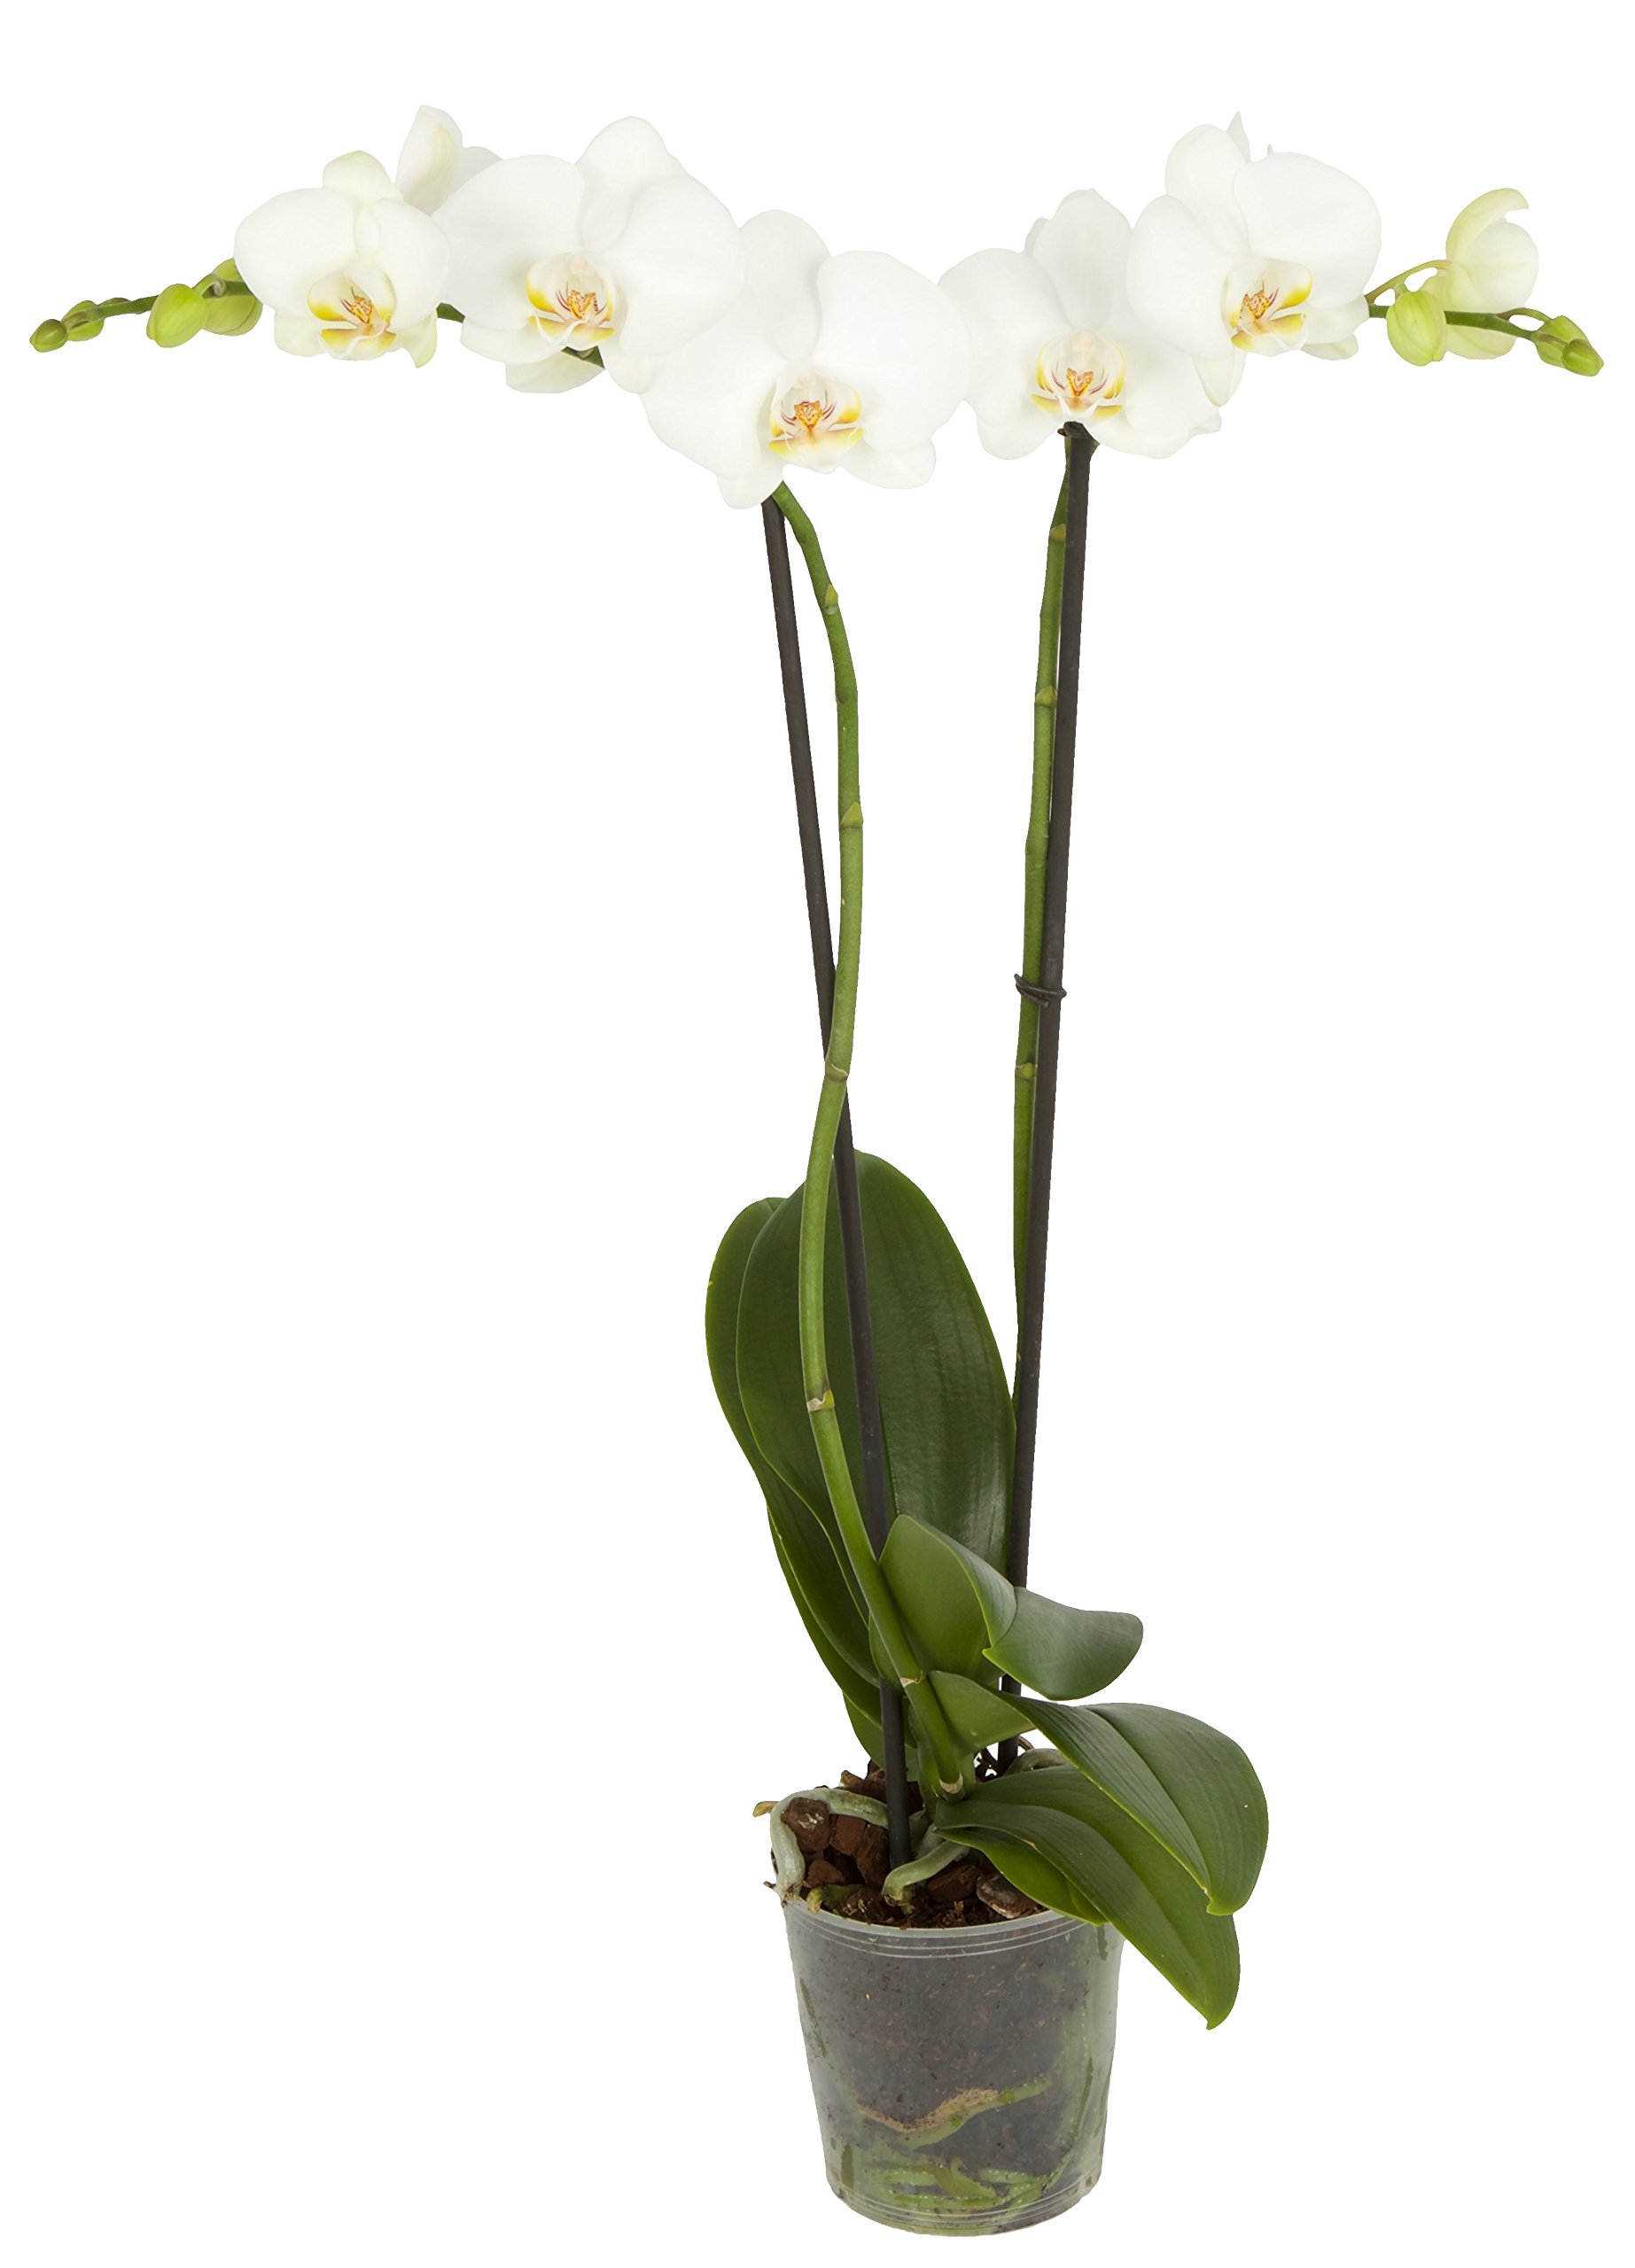 Color Orchids Live Blooming Double Stem Orchid In Grow Pot,, 20-24'' Tall, White Blooms by Color Orchids